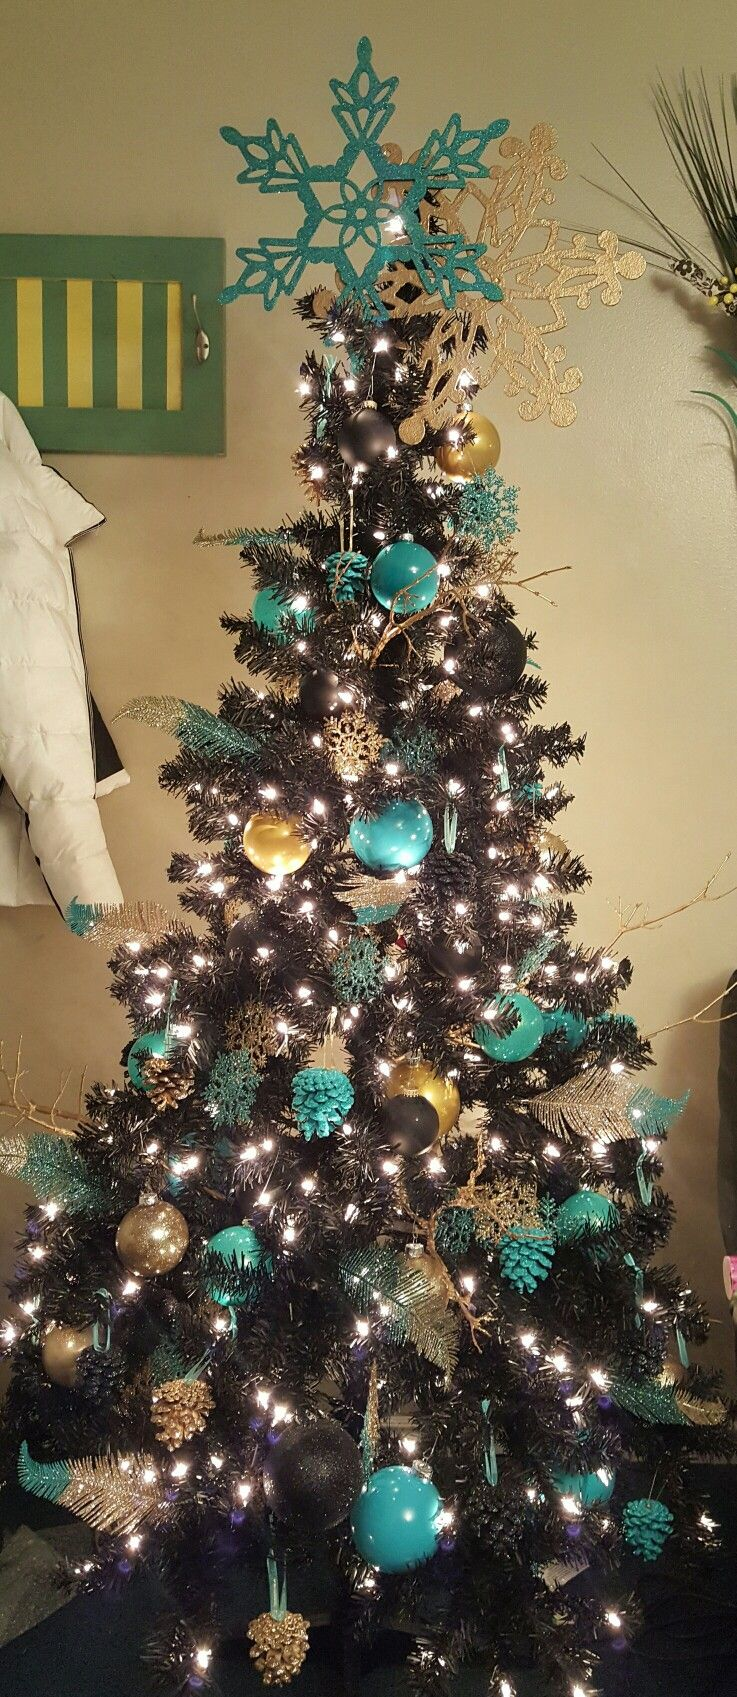 Black Christmas Tree Love The Gold And Teal Ornaments Black Christmas Trees Best Christmas Tree Decorations Teal Christmas